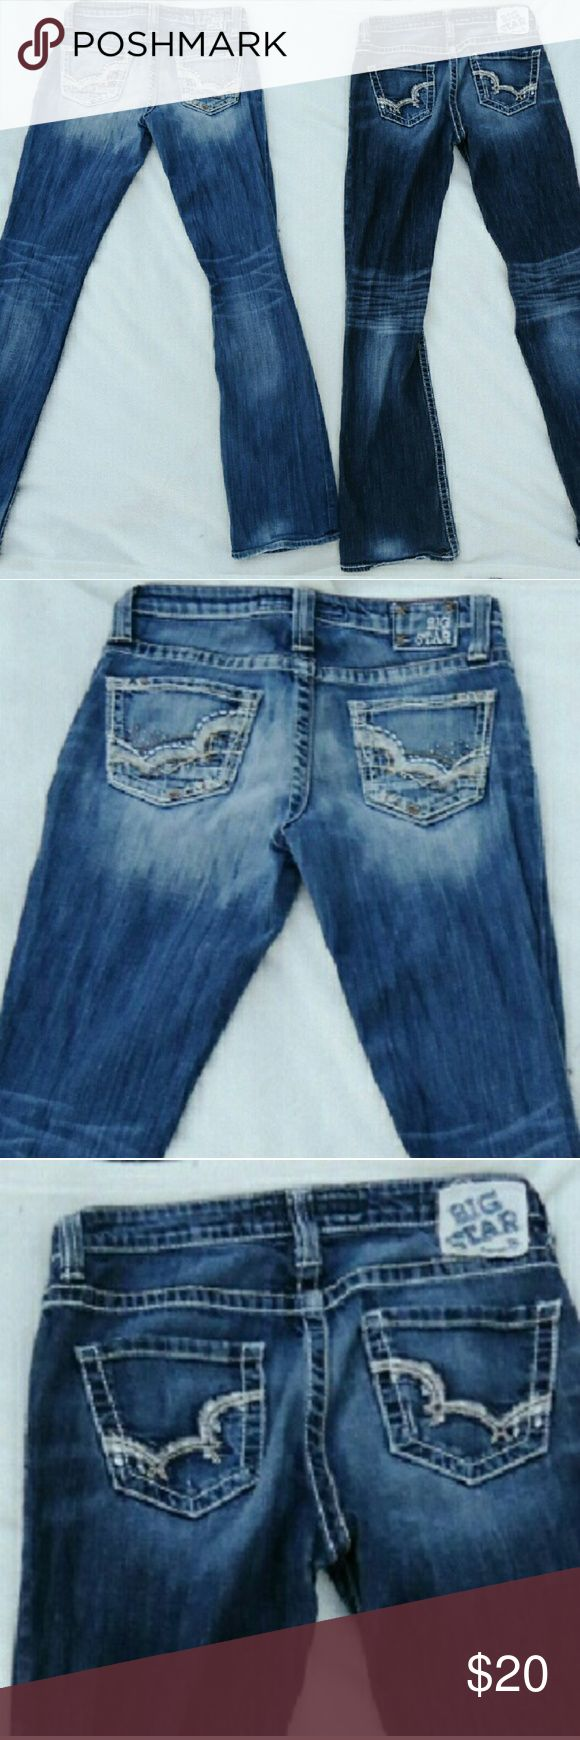 2 pair of Big Star Jeans Long 2 pair of Big Star Jeans both 27 Long! Great condition!  No rips or holes!  $20 for both Big Star Jeans Boot Cut